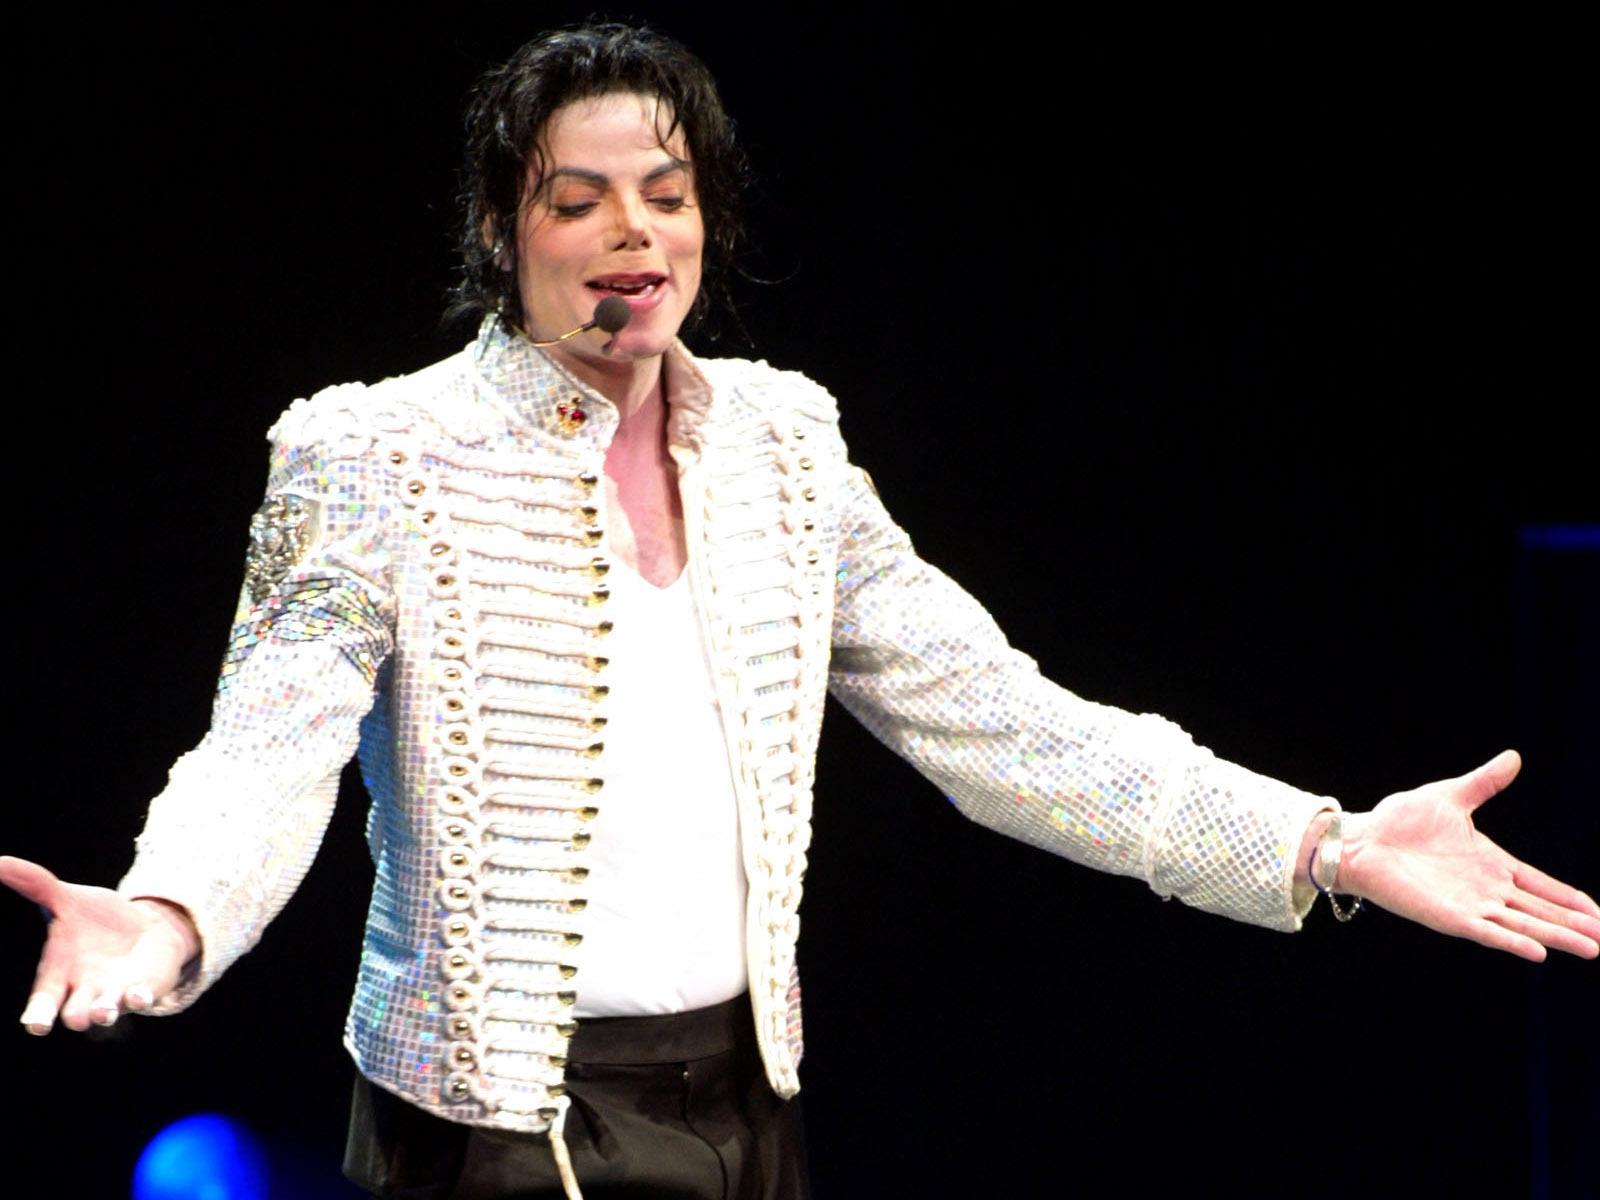 http://1.bp.blogspot.com/-5FcBwWM2BxY/T6mRh2WoyMI/AAAAAAAABkE/p_8cYX5Prdg/s1600/The-best-top-desktop-michael-jackson-wallpapers-12.jpg